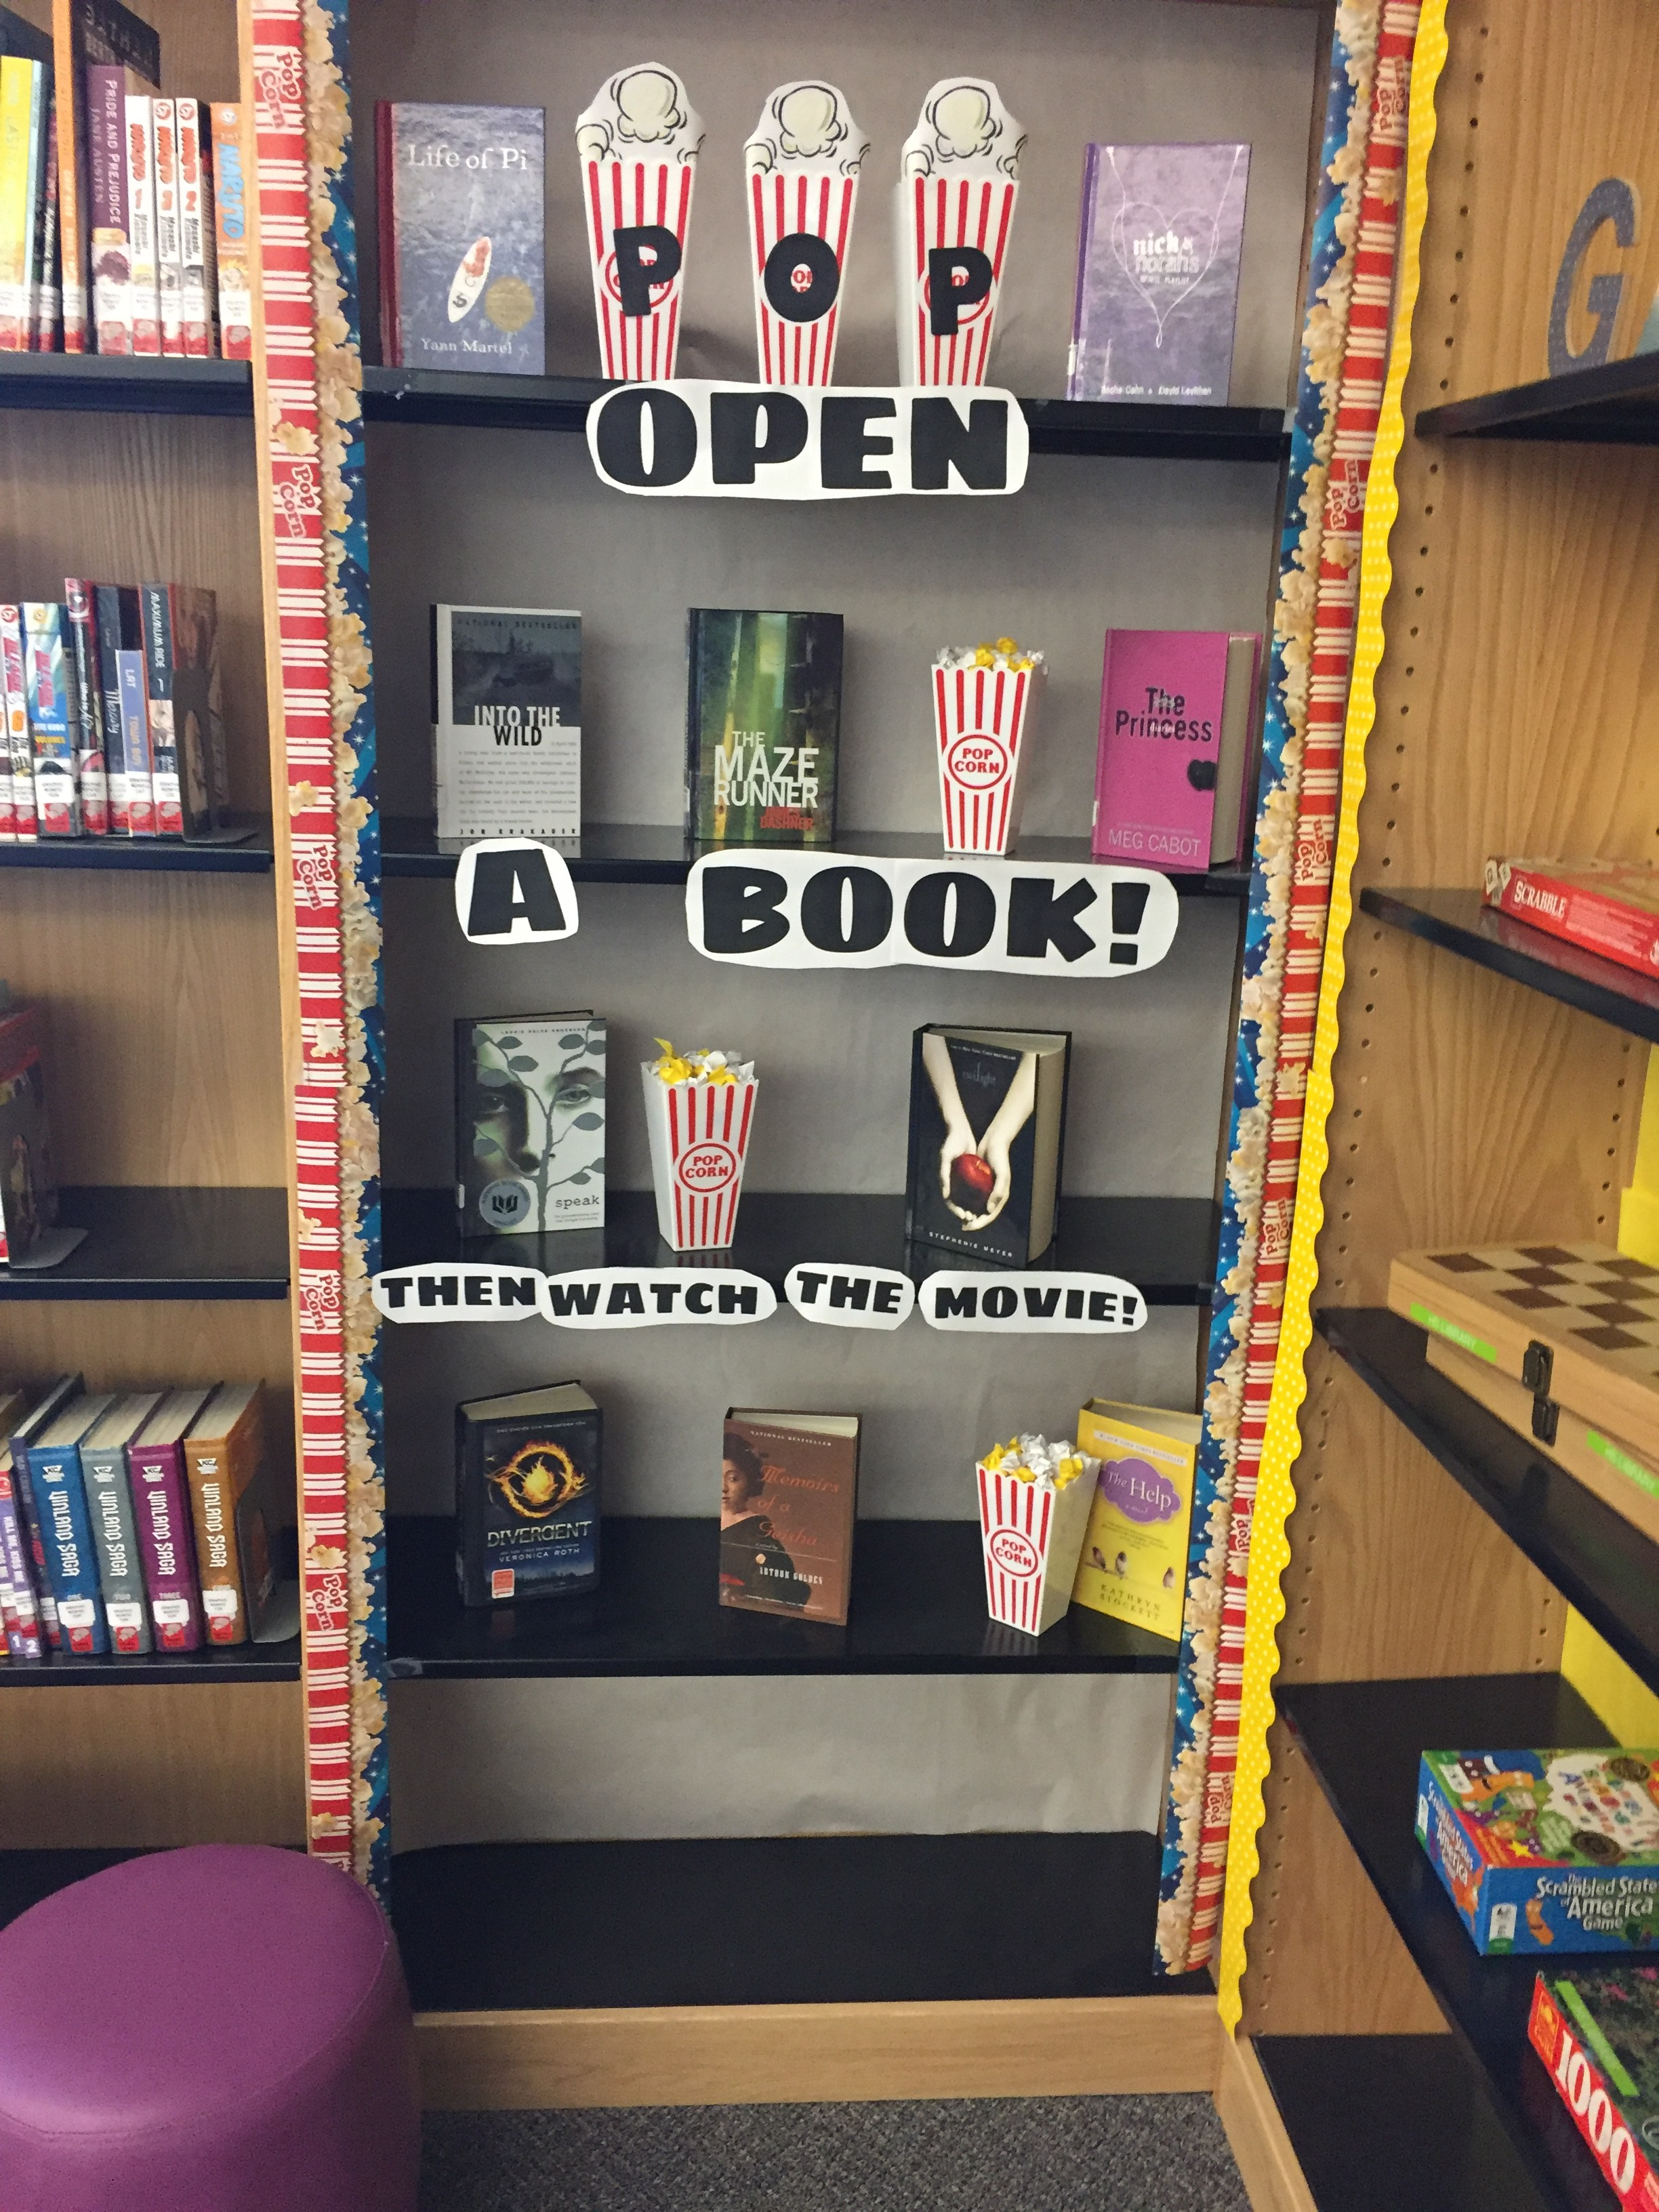 Pop Open a Book then Watch the Movie